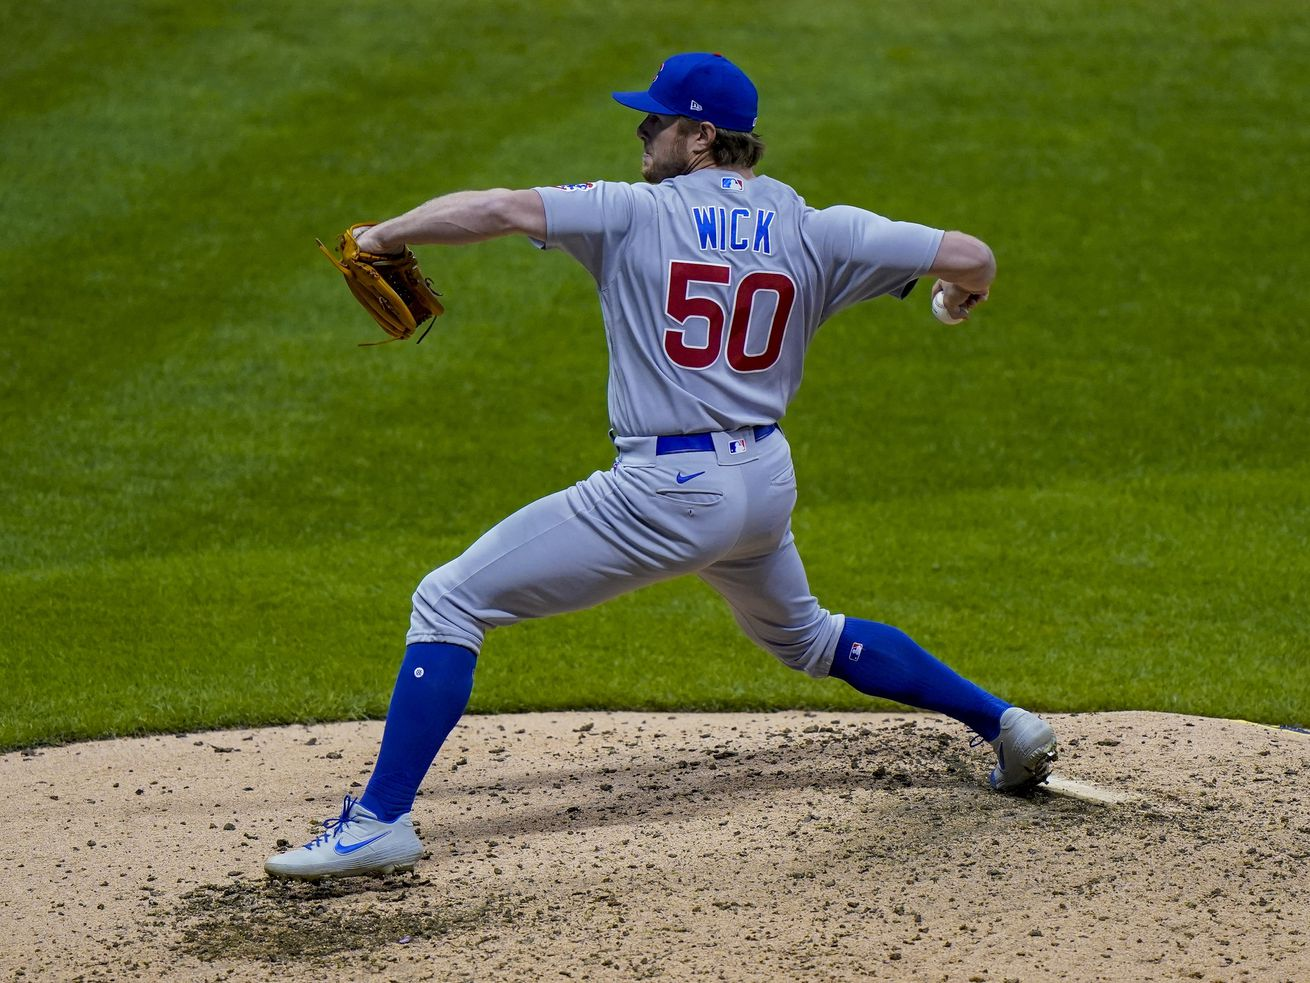 The absence of Rowan Wick poses challenge for Cubs as postseason looms